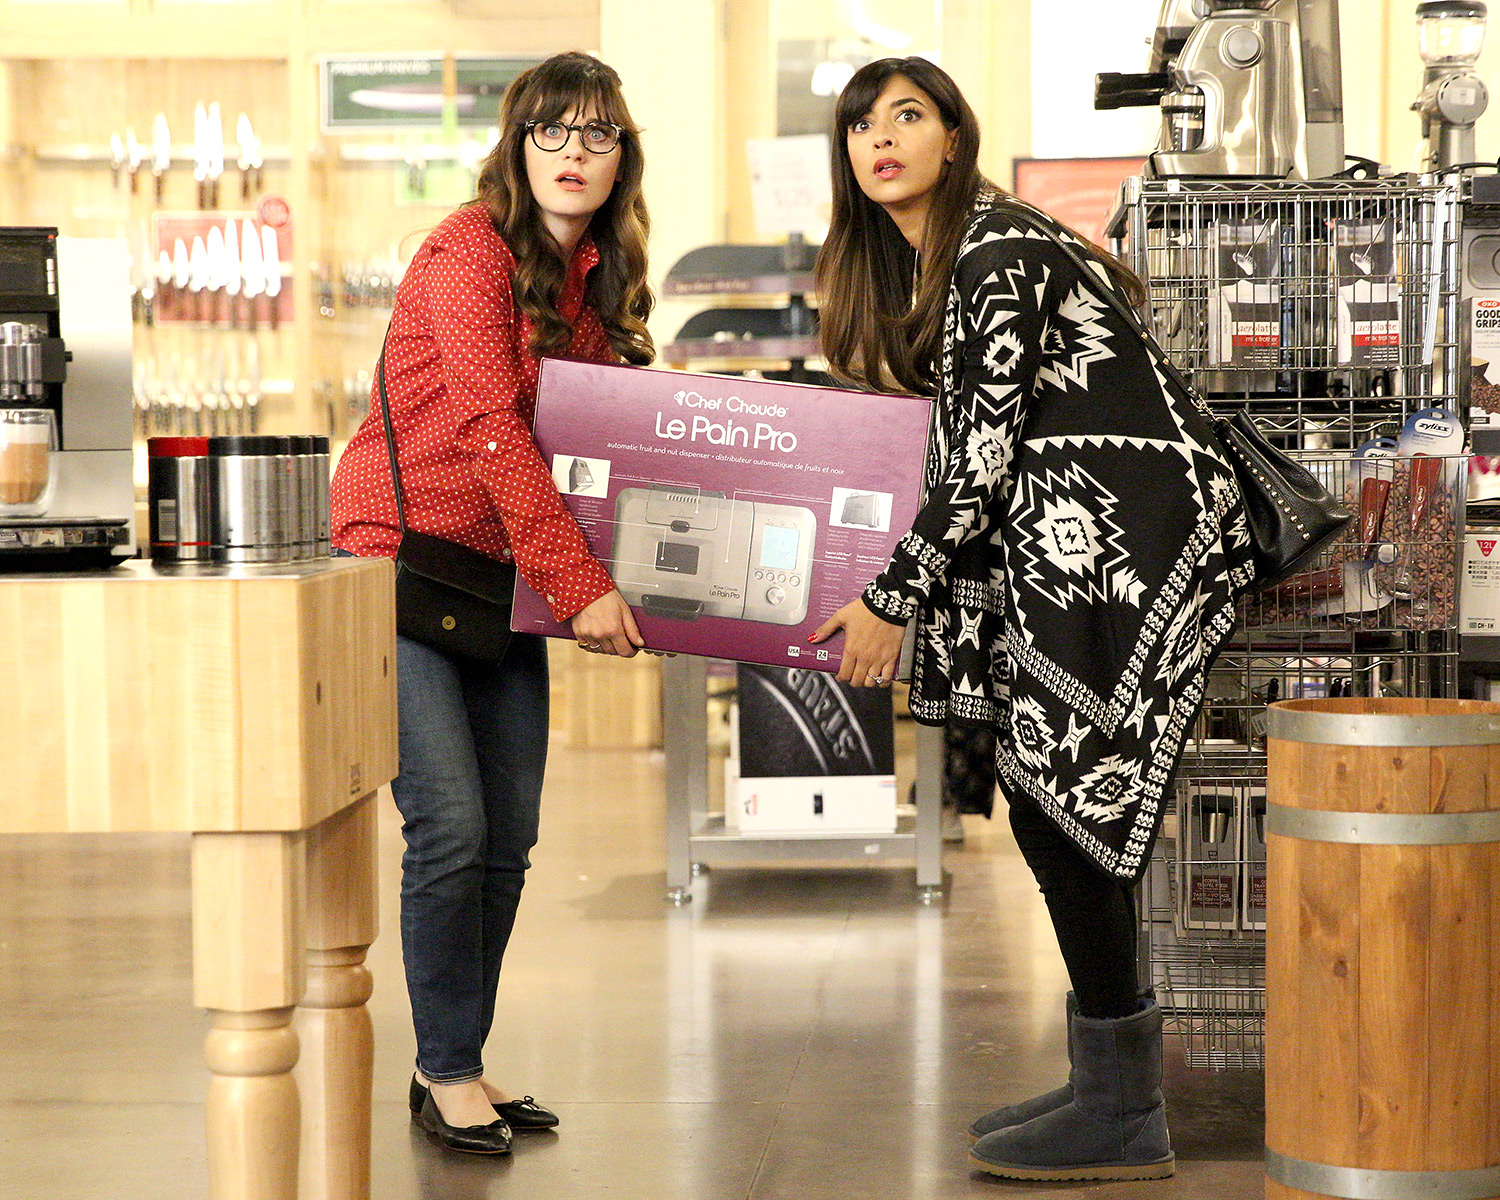 New Girl's Cece and Jess